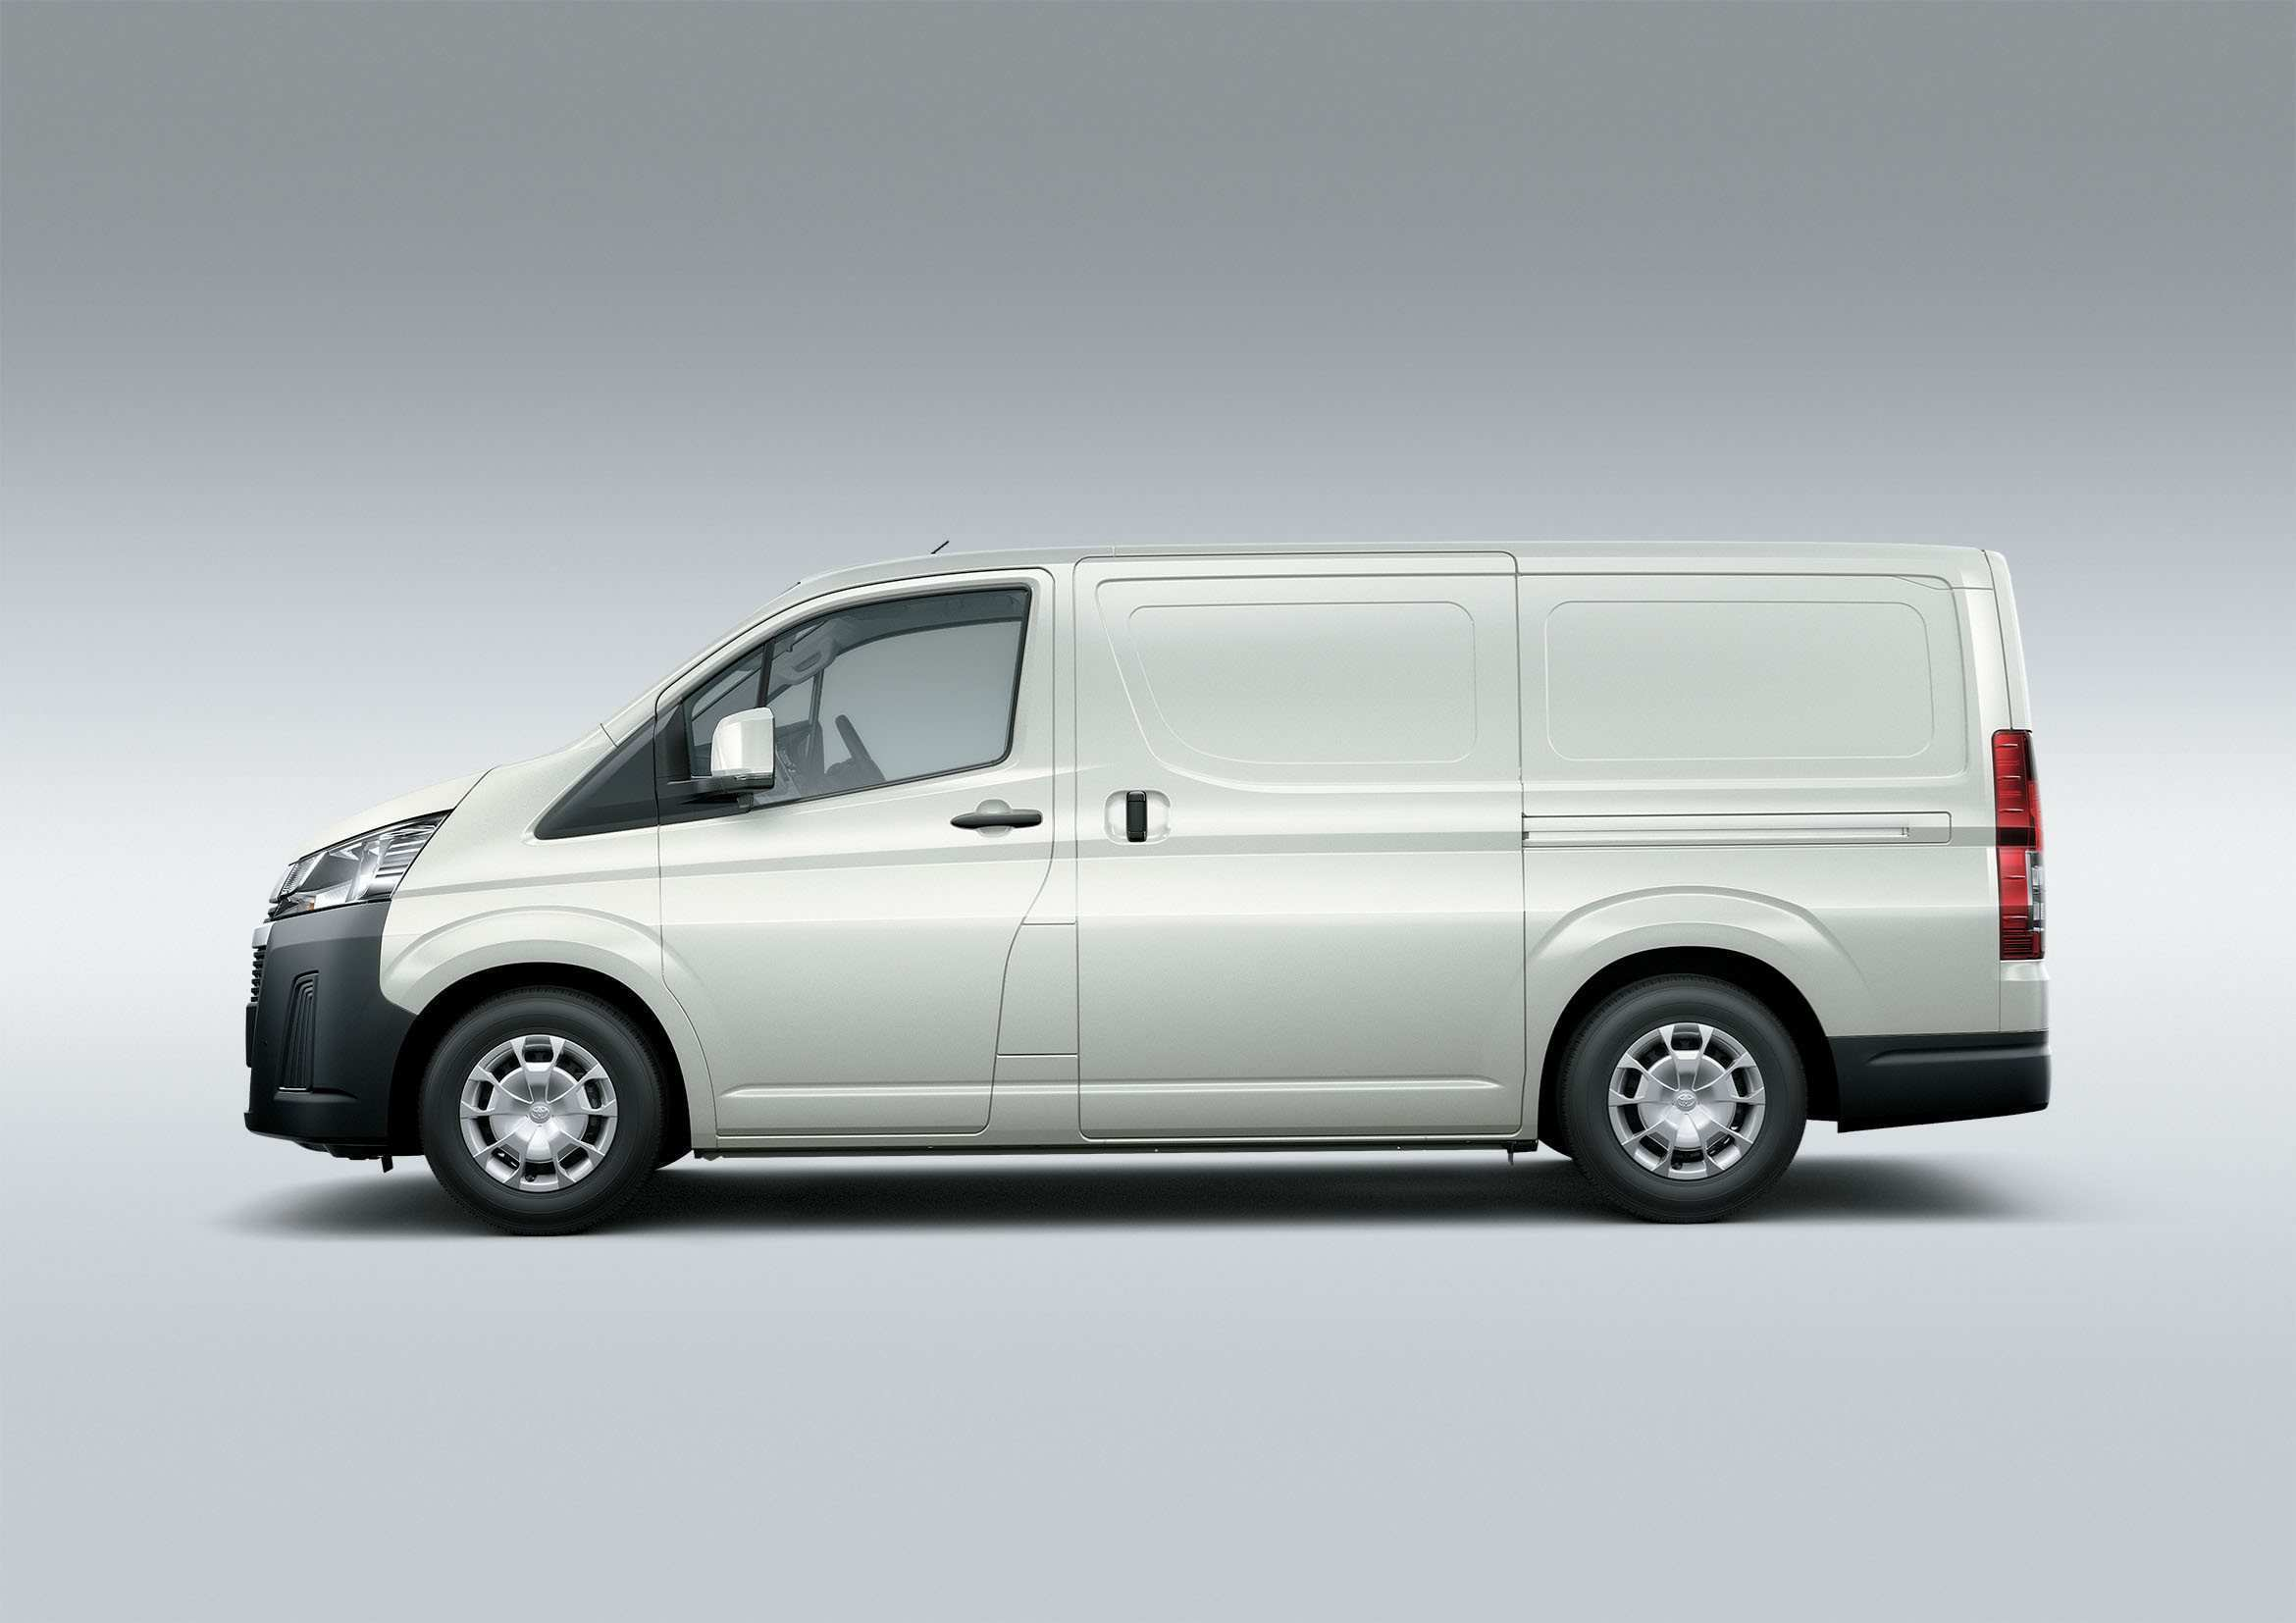 91 All New Toyota Hiace 2020 Price with Toyota Hiace 2020